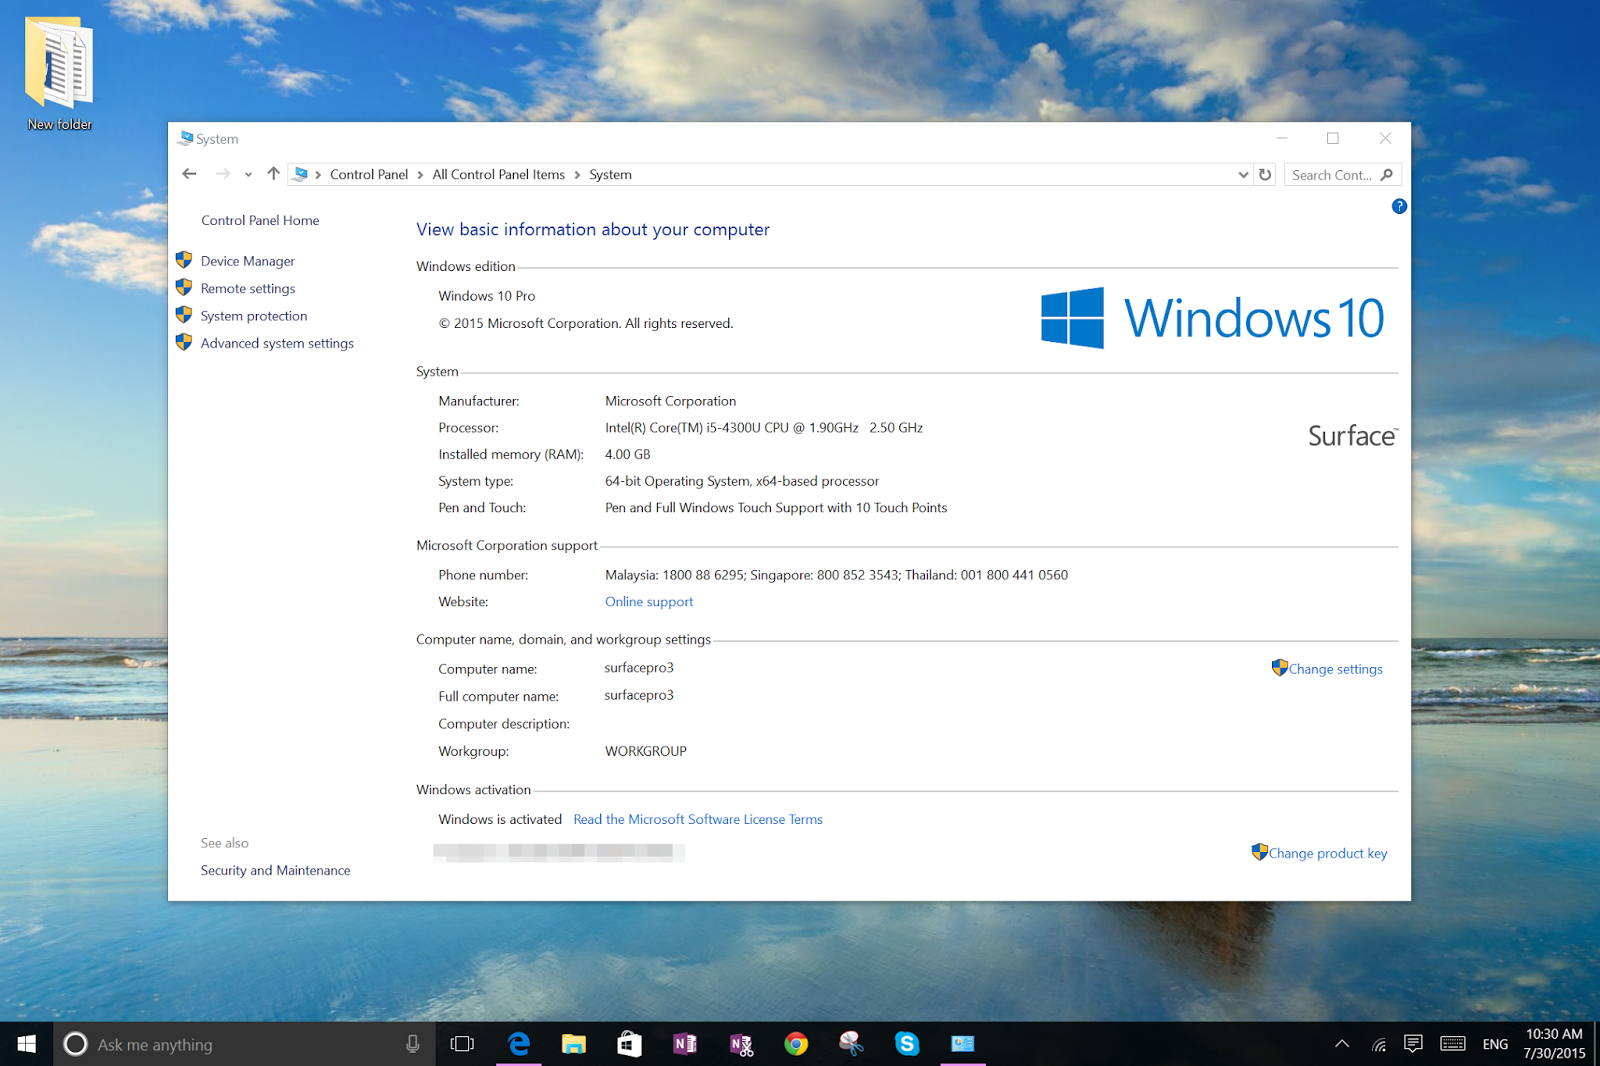 windows-10-surface-pro-3-system